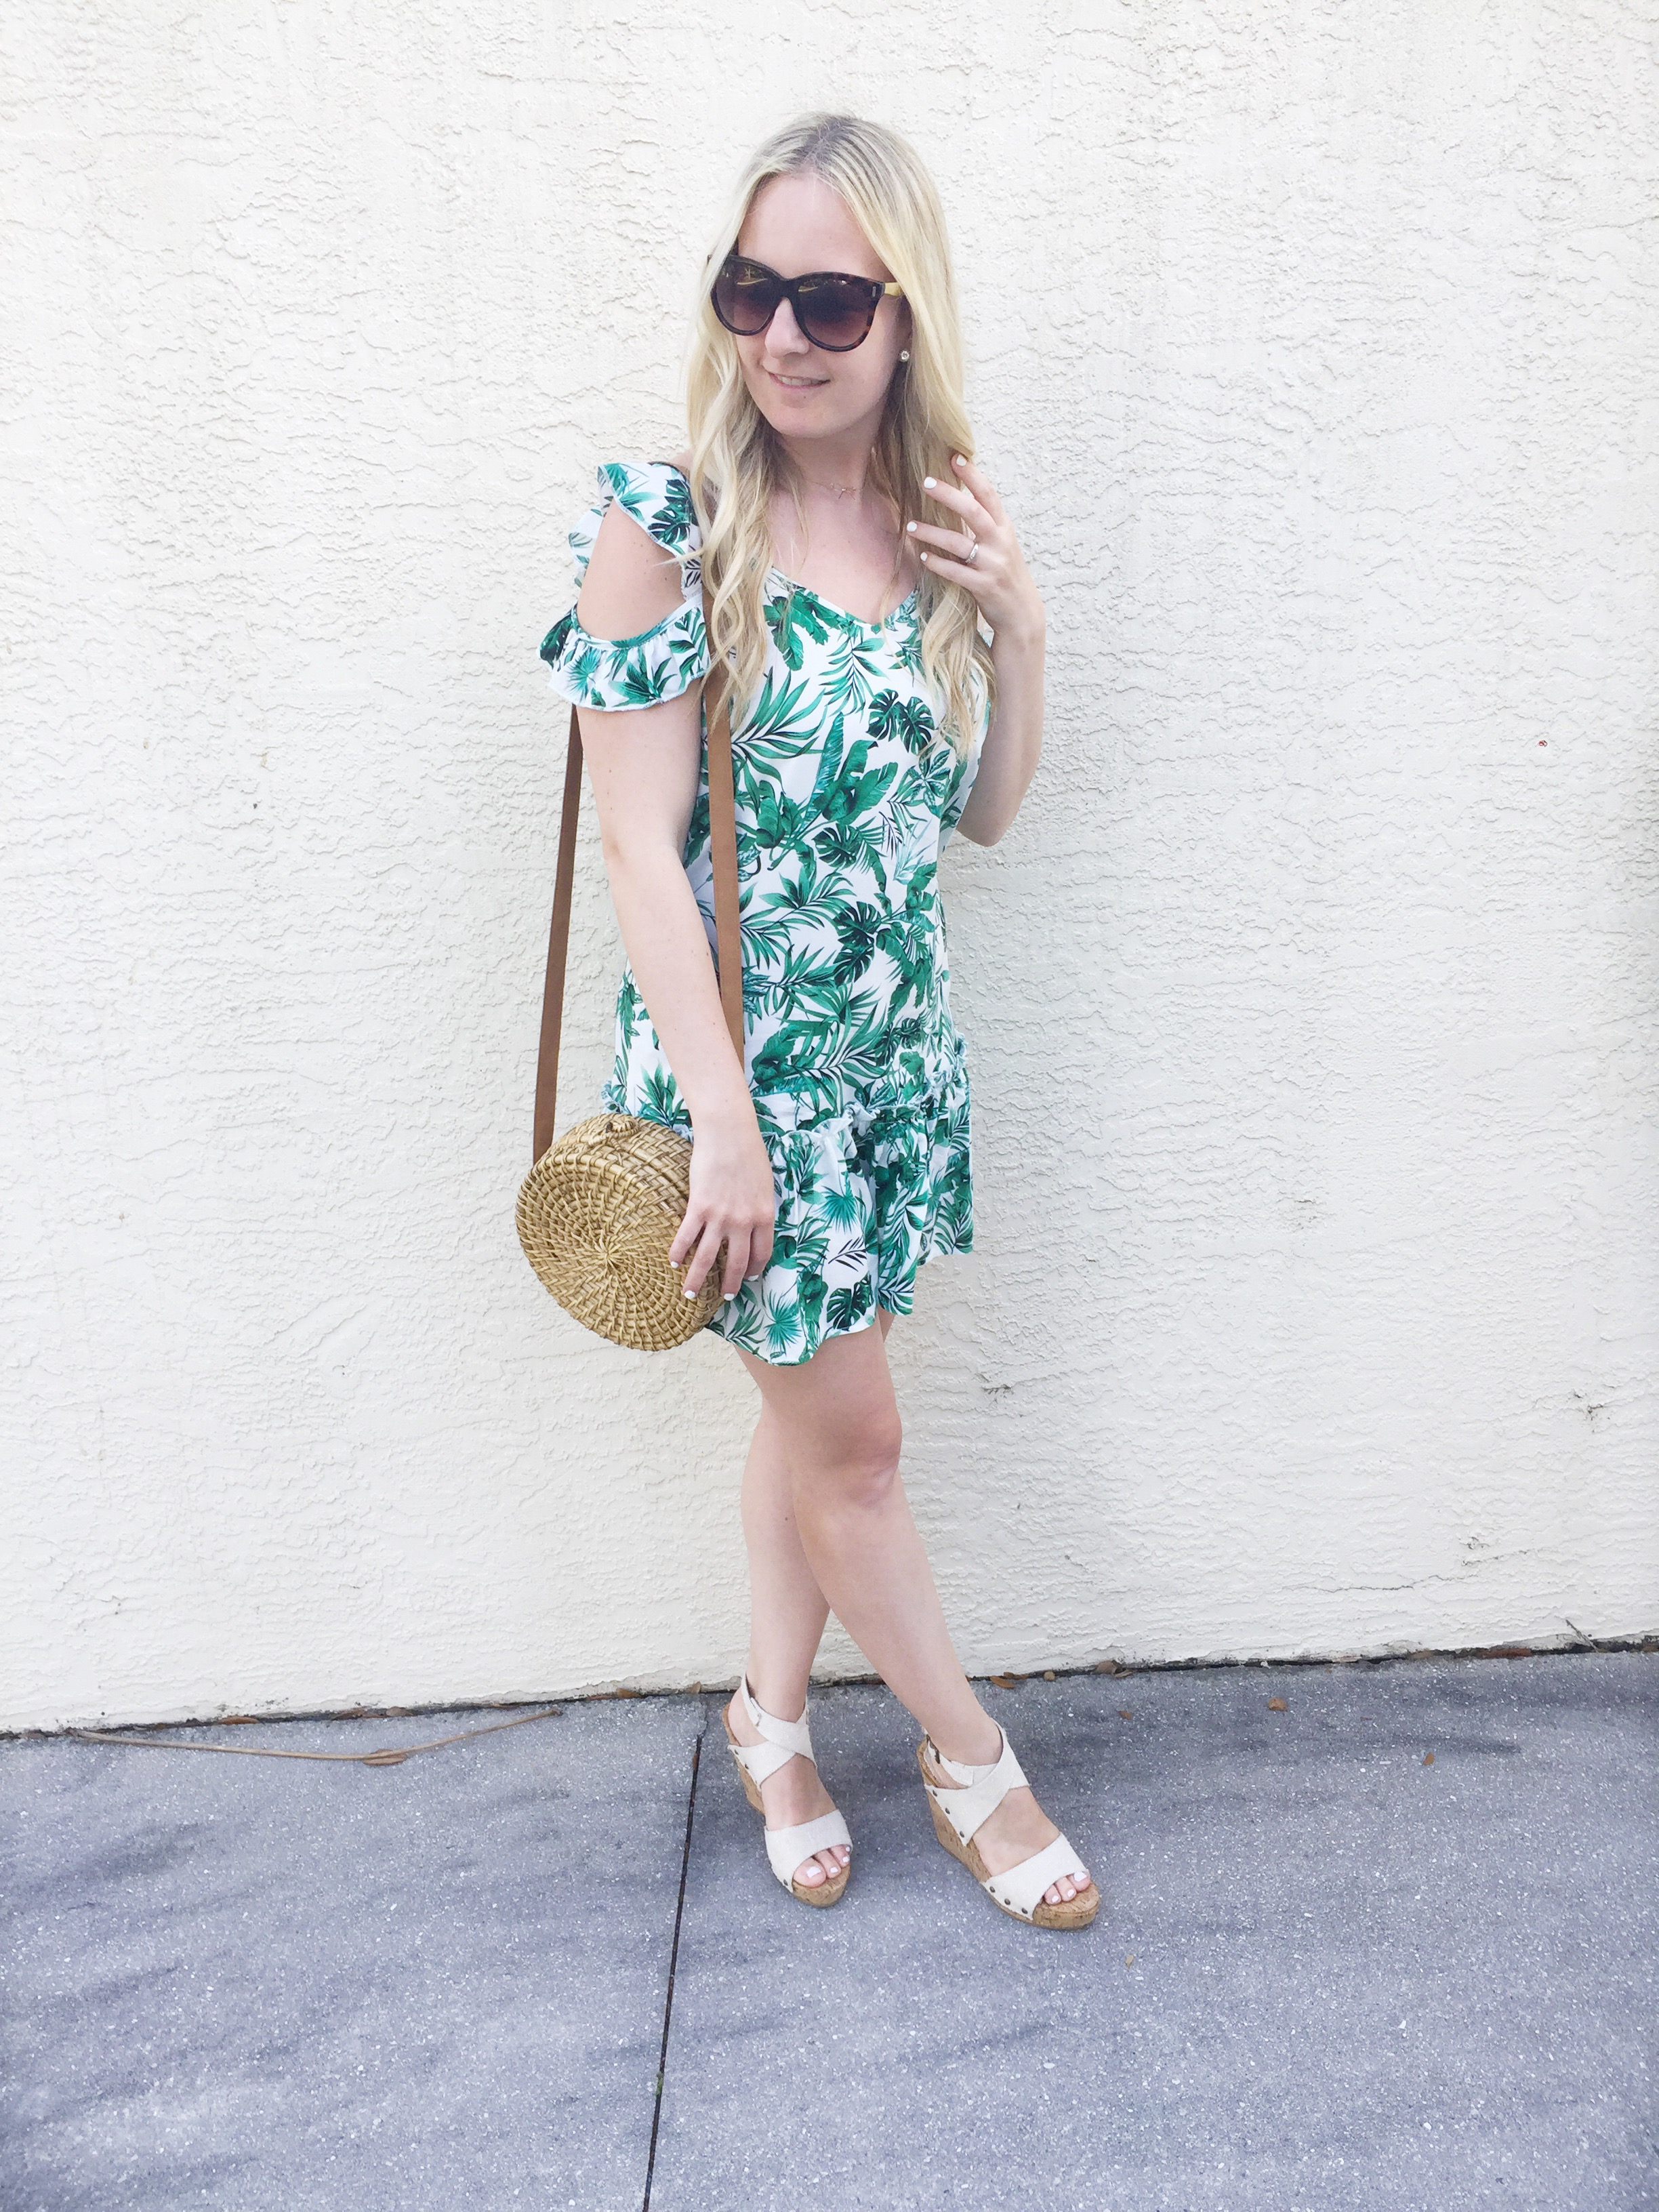 Palm Leaf Dress on Livin' Life with Style